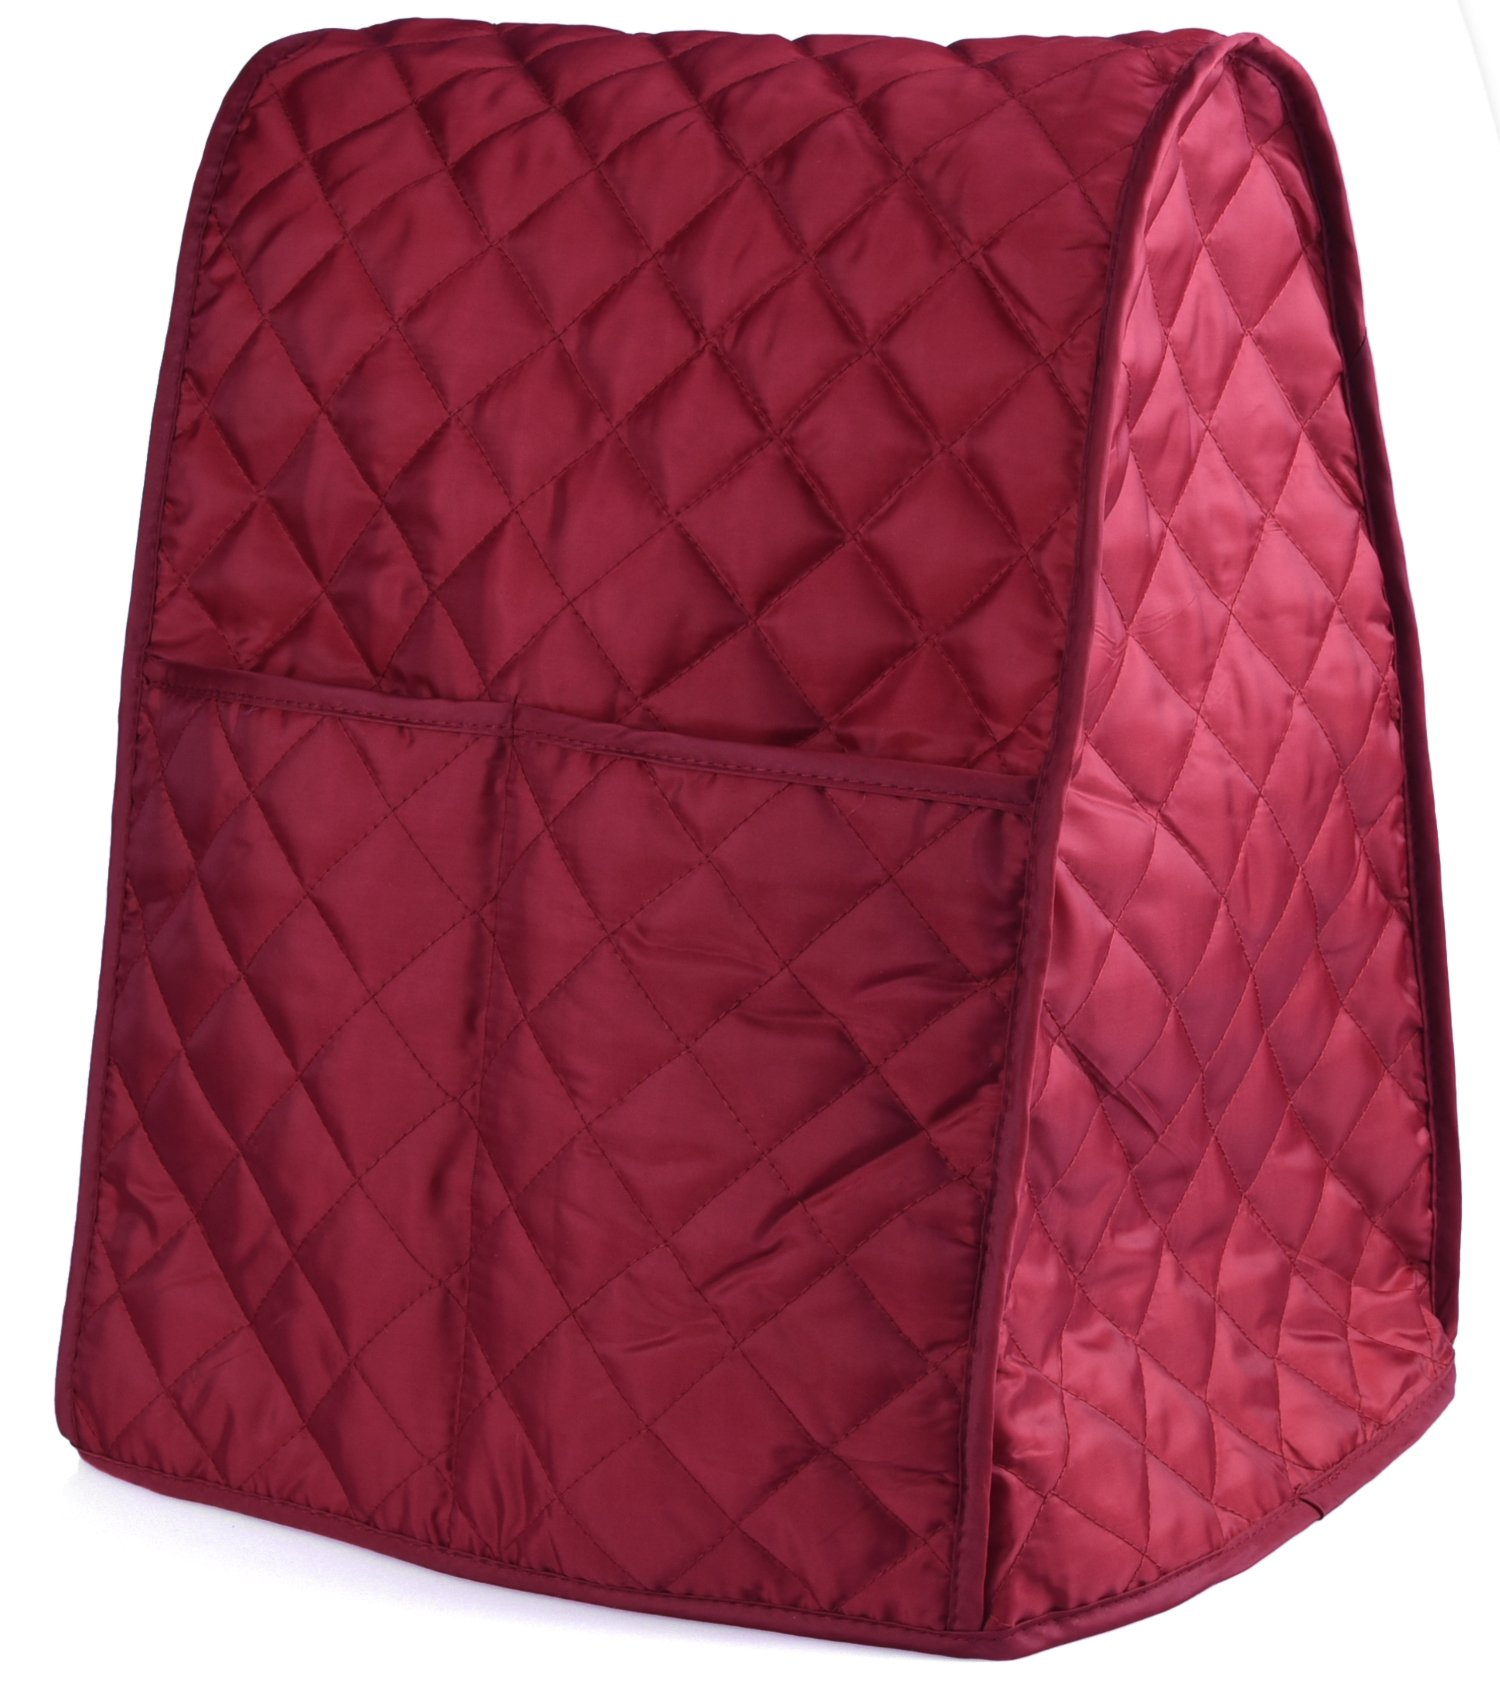 Stand Mixer Cover Dust-proof with Organizer Bag for Kitchen Mixer (Dark Red)